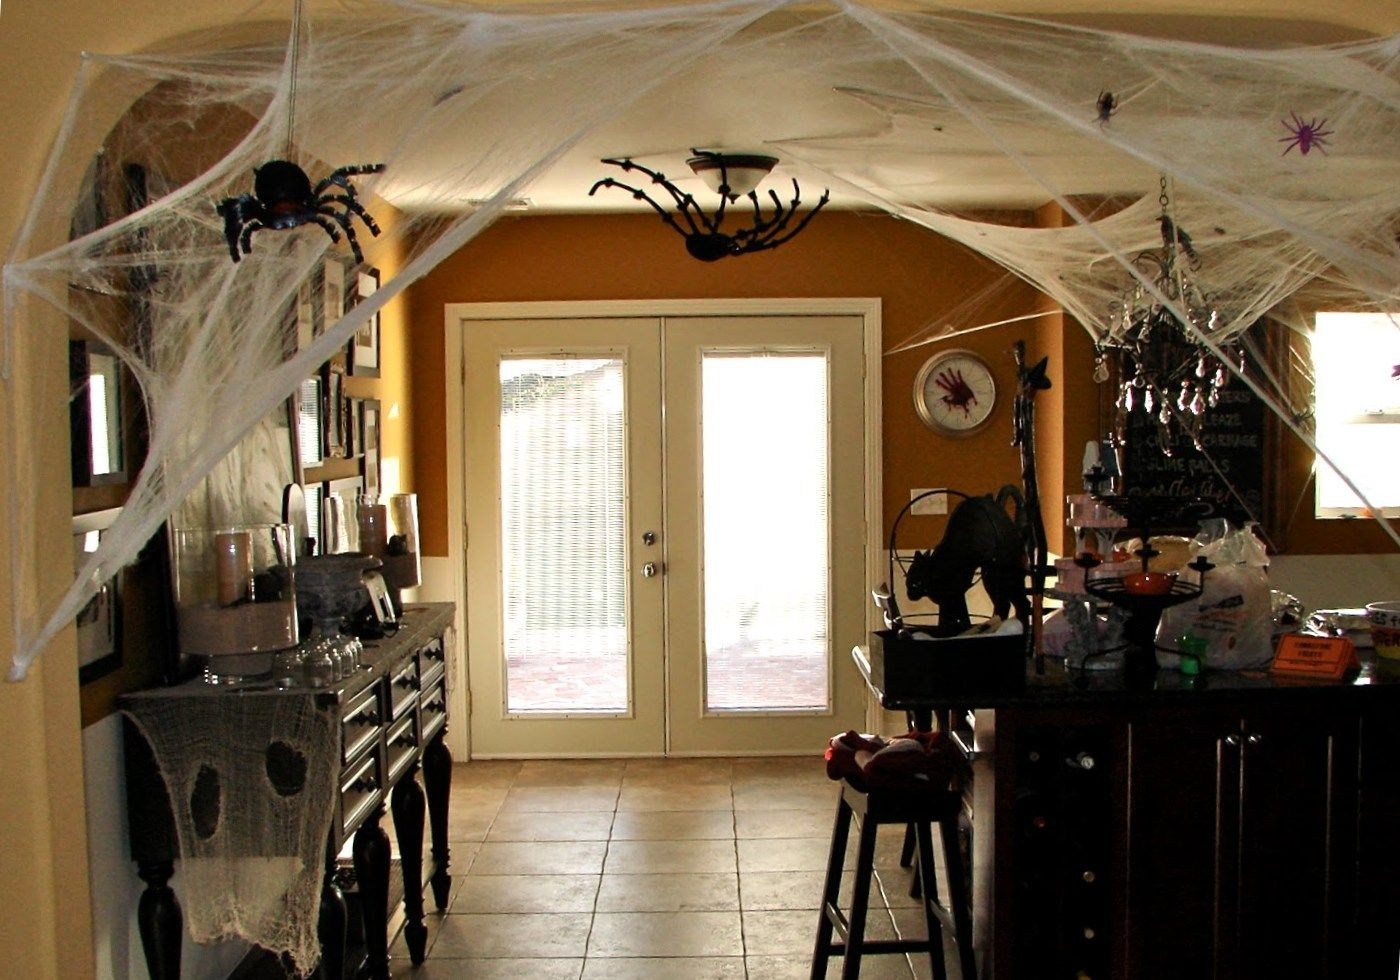 plete List of Halloween Decorations Ideas In Your Home